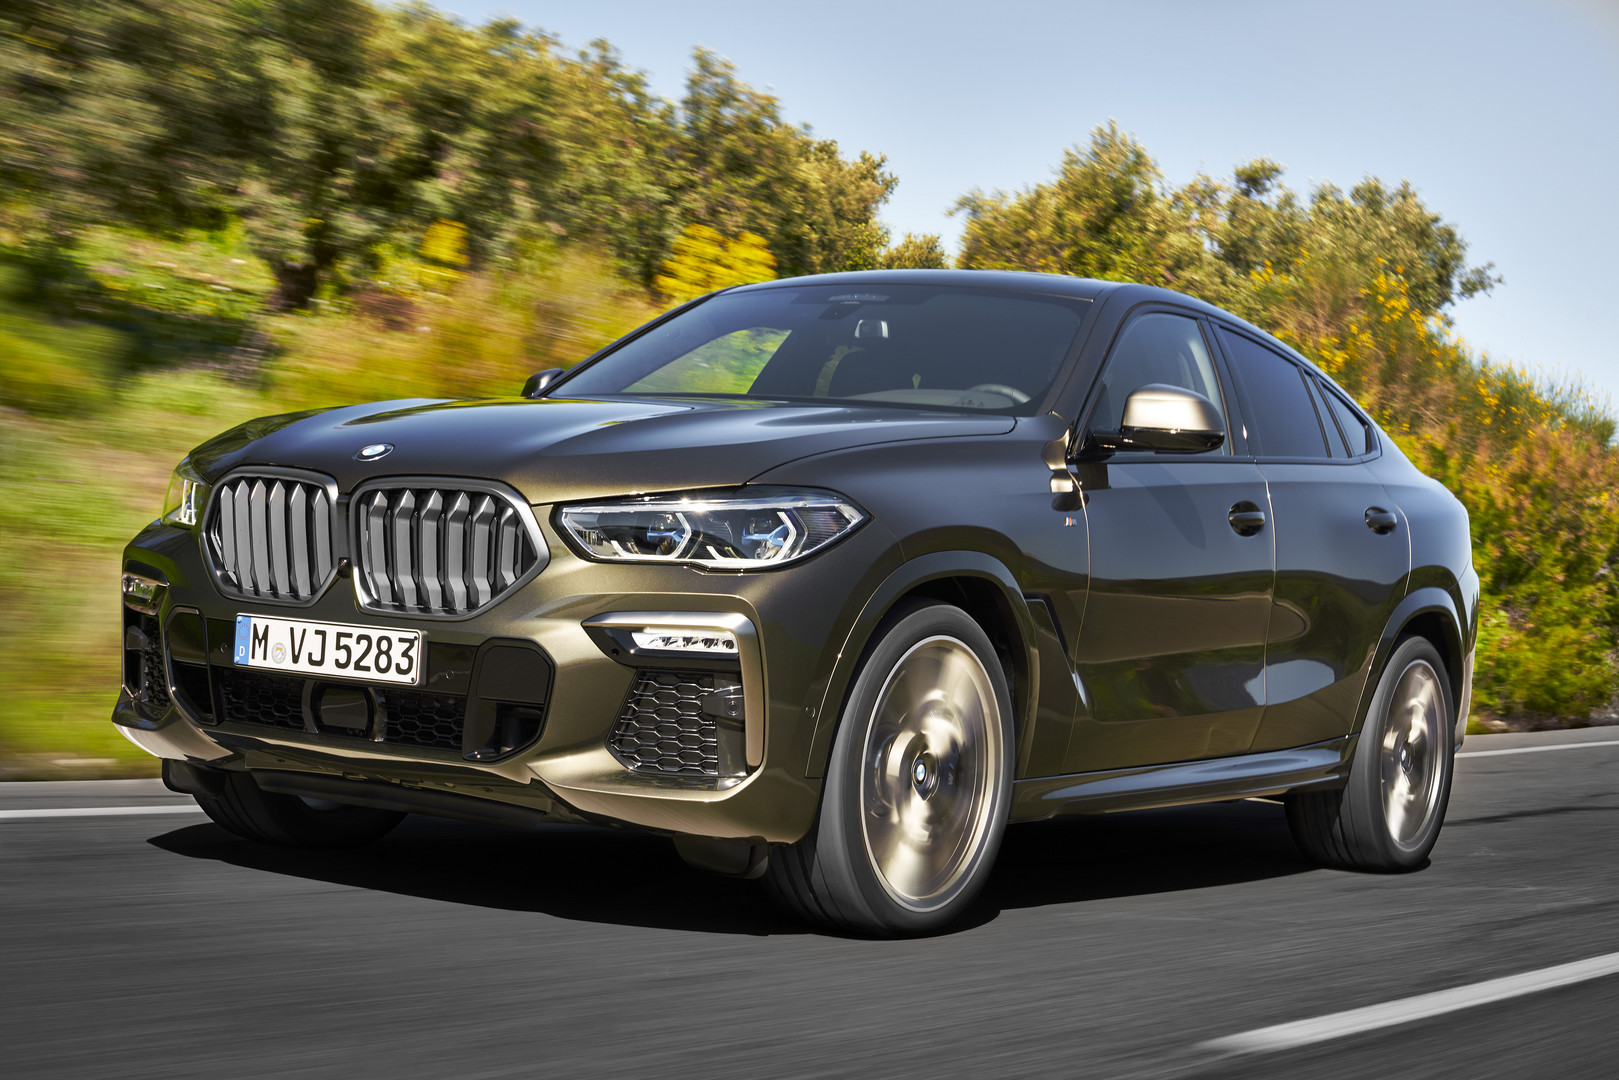 Bmw X6 M50i 2020 Price In India